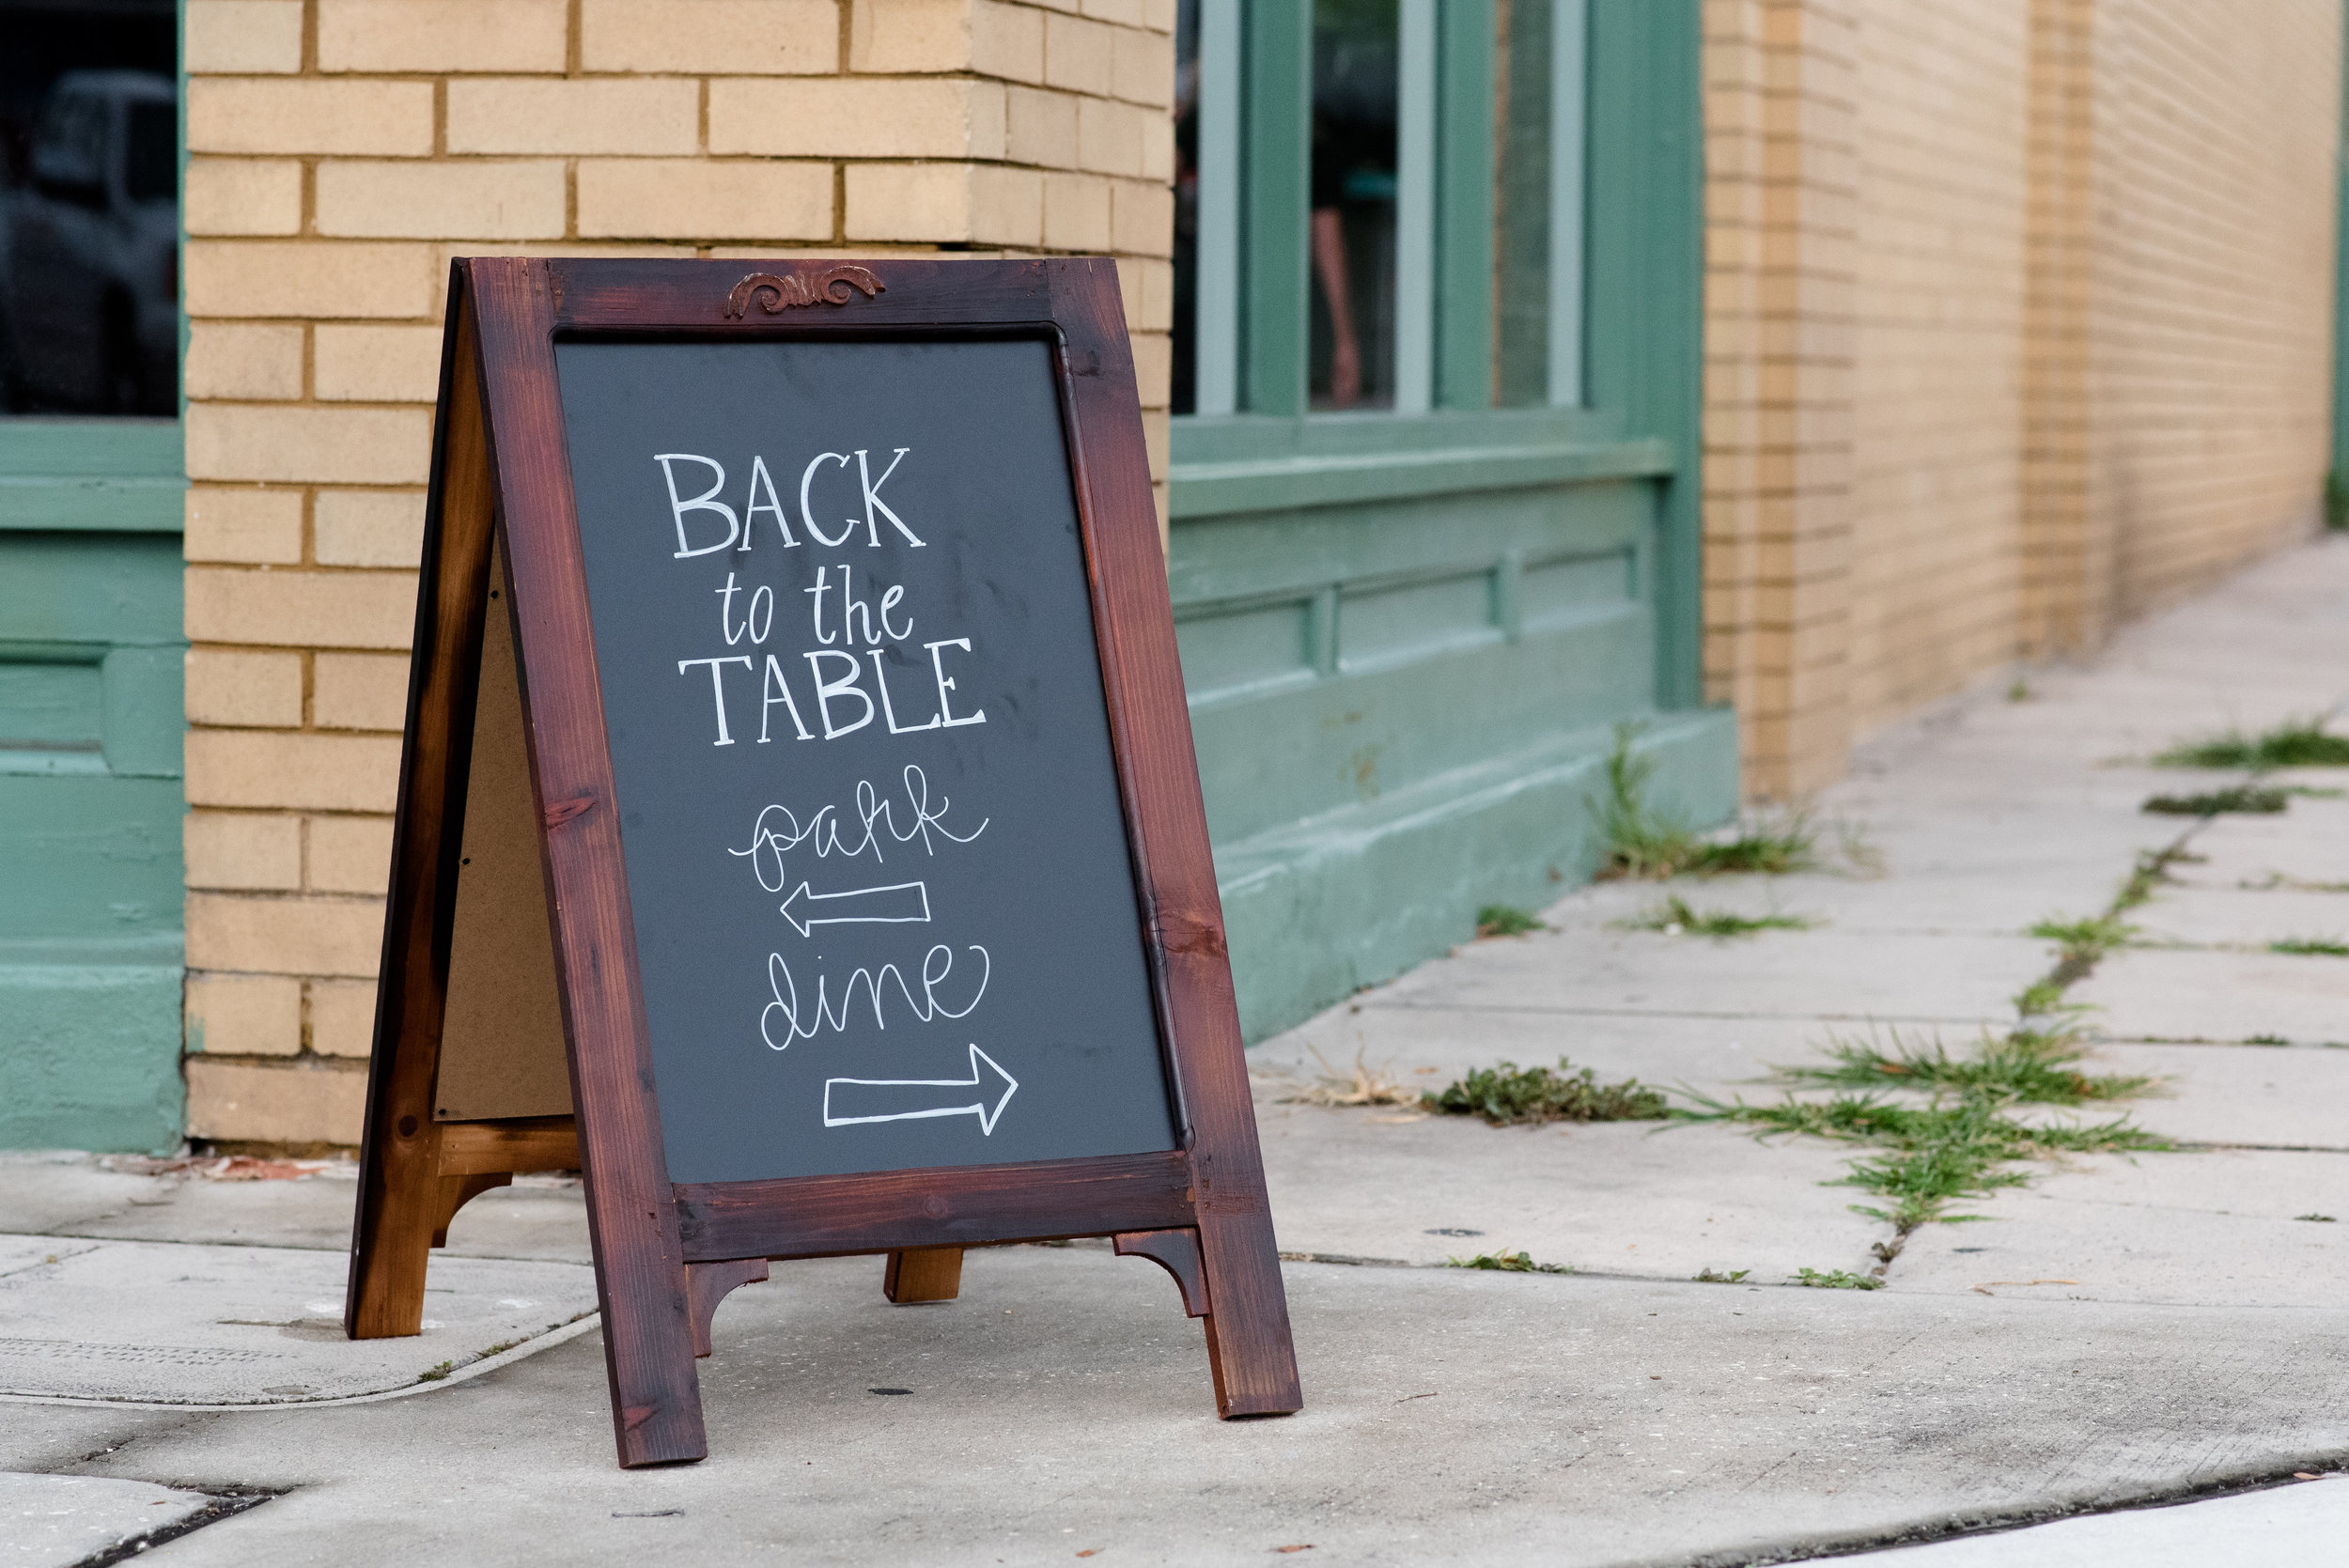 Simple and unassuming sign pointing guests in the direction of the undisclosed Back to the Table dining location